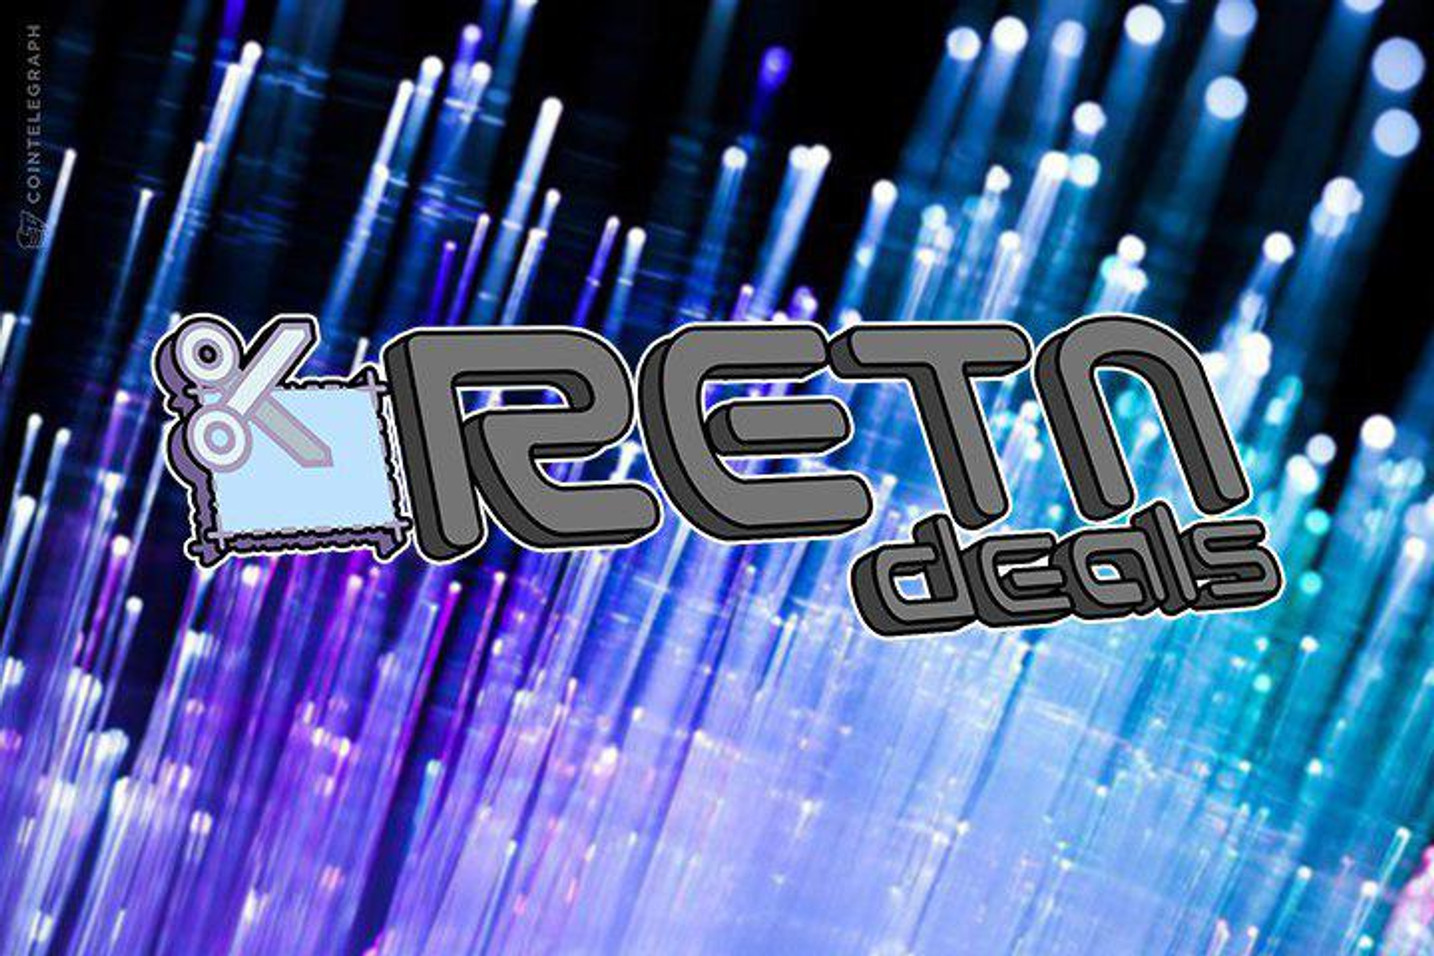 World's 1st Crypto Cashback - RETN Deals - Now Live